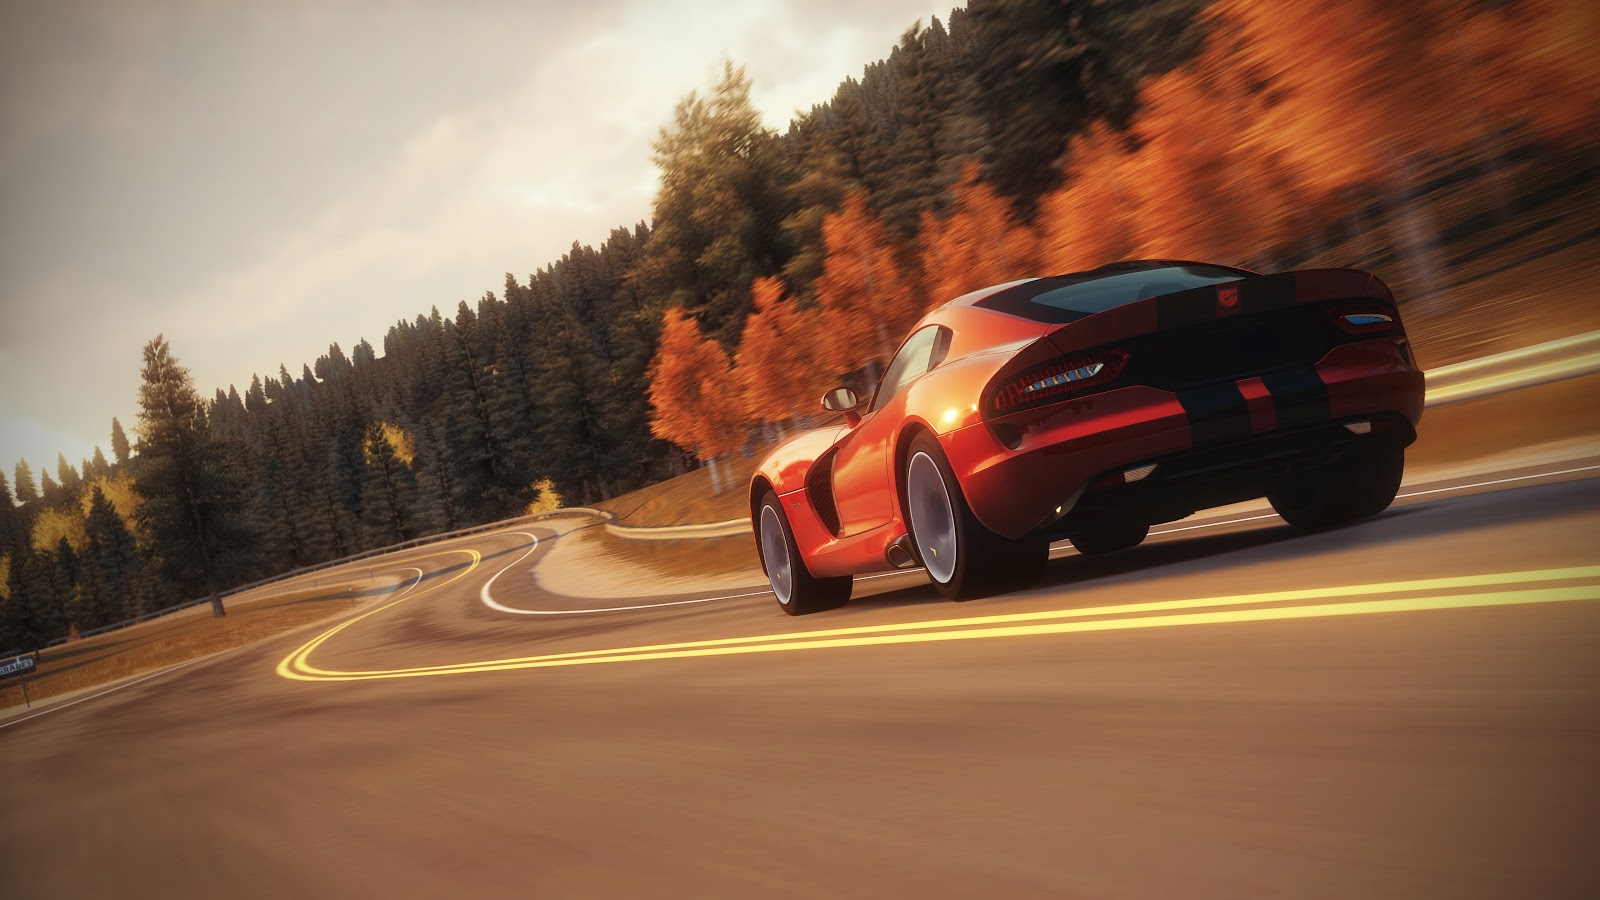 Forza Horizon HD & Widescreen Wallpaper 0.776336055535594